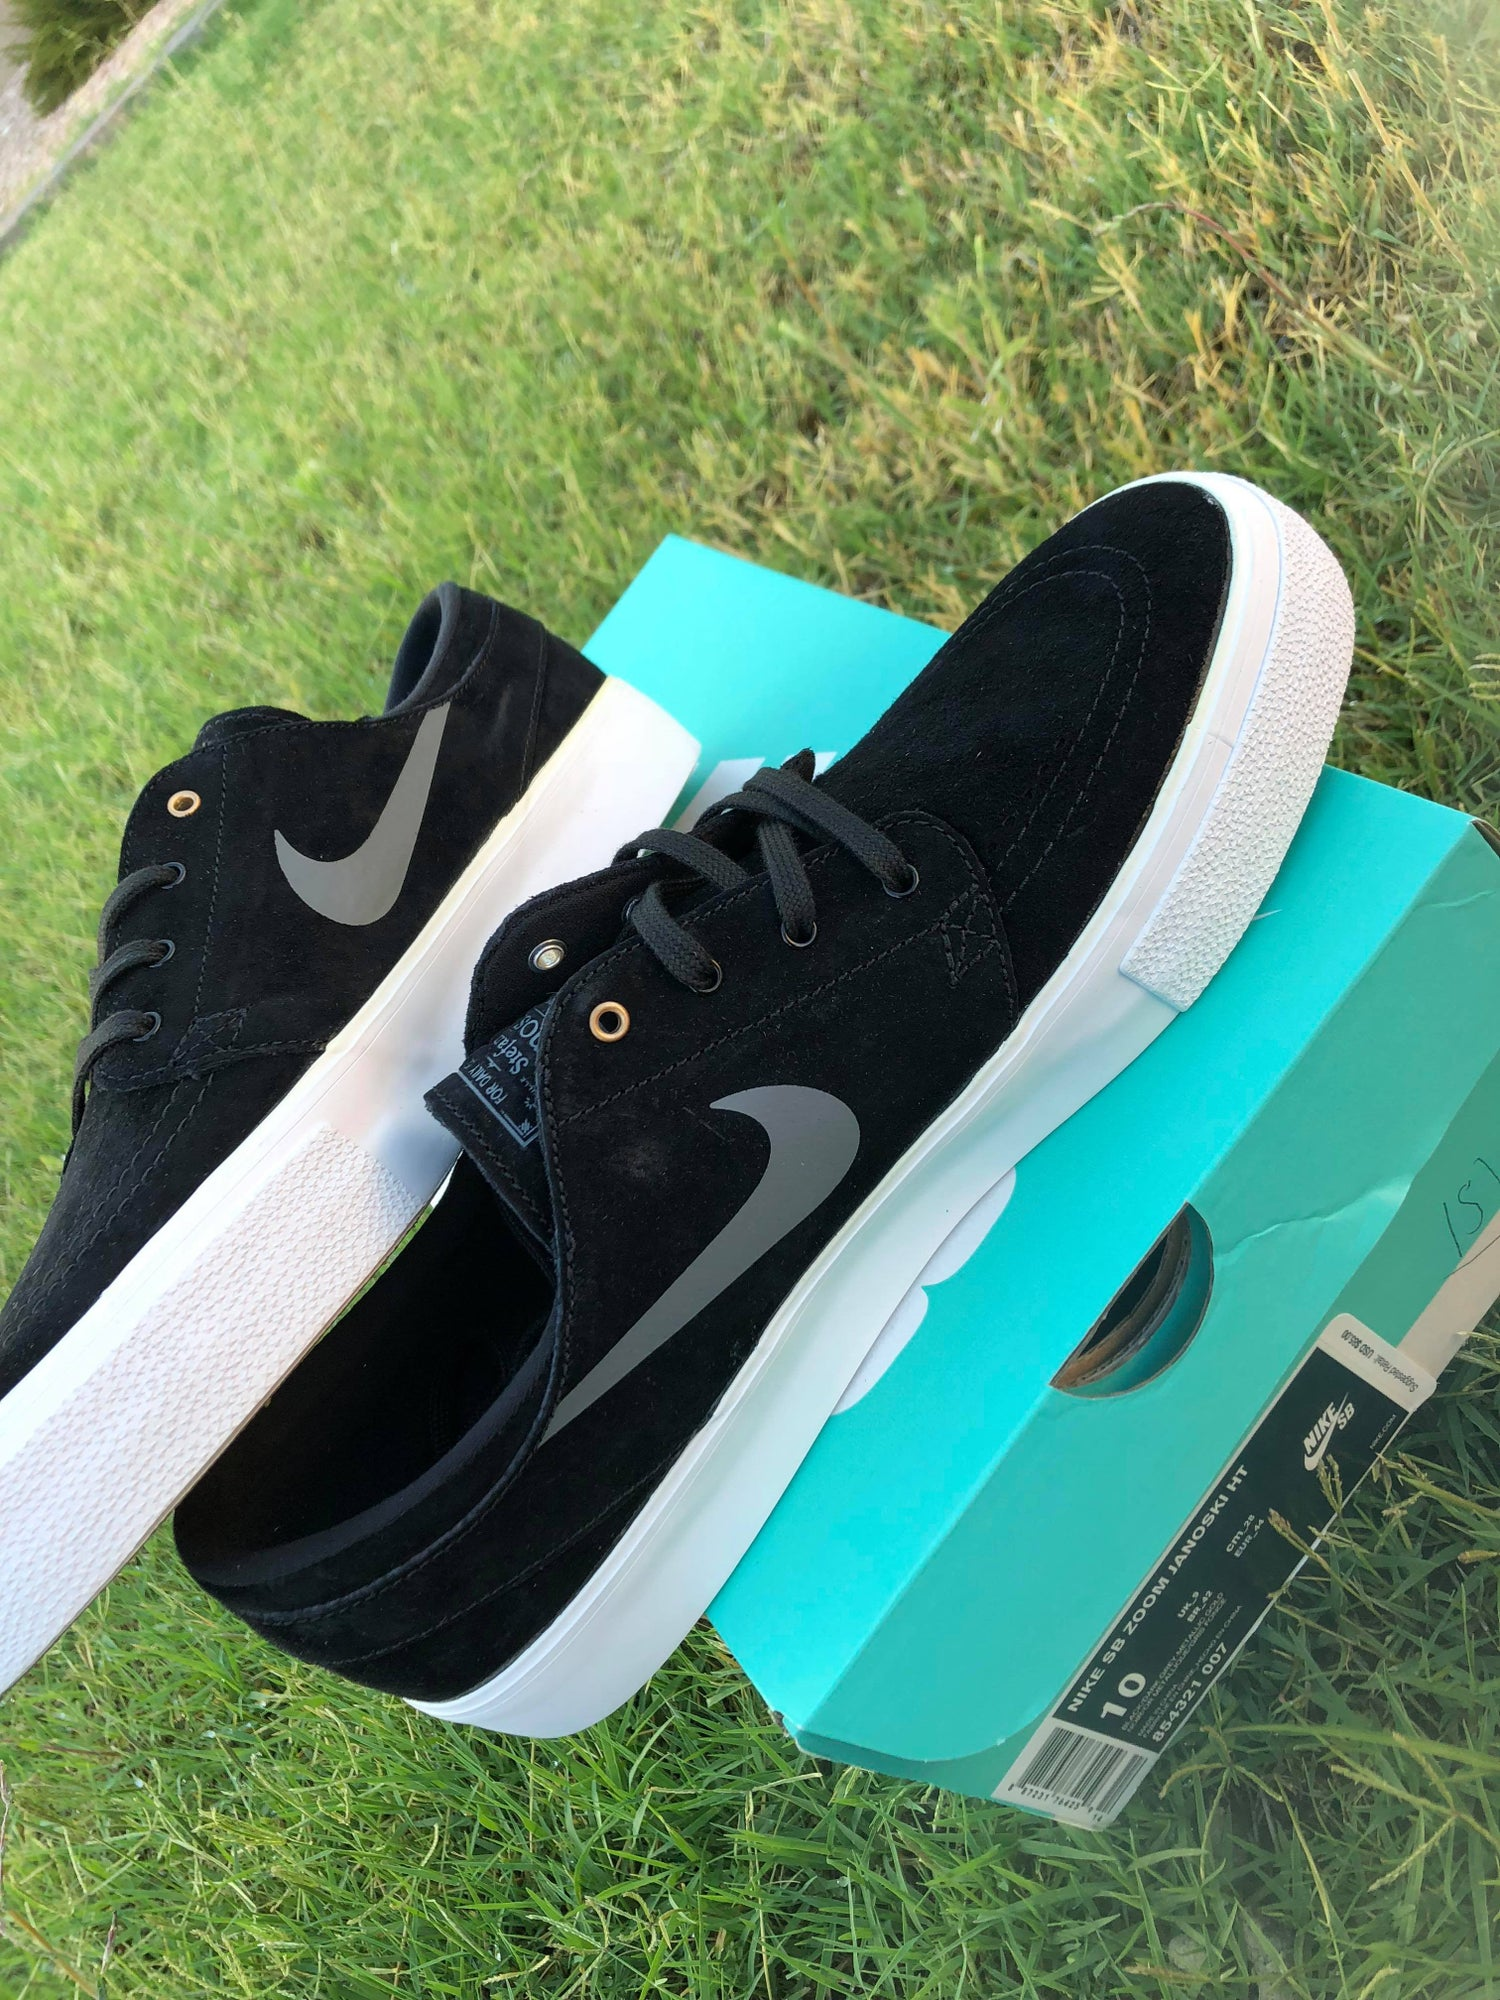 ... Metallic Gold   White. Image of Nike SB Zoom Stefan Janoski HT Men s  Skate Shoe - Black   Dark Grey. On sale 73fa84ccf